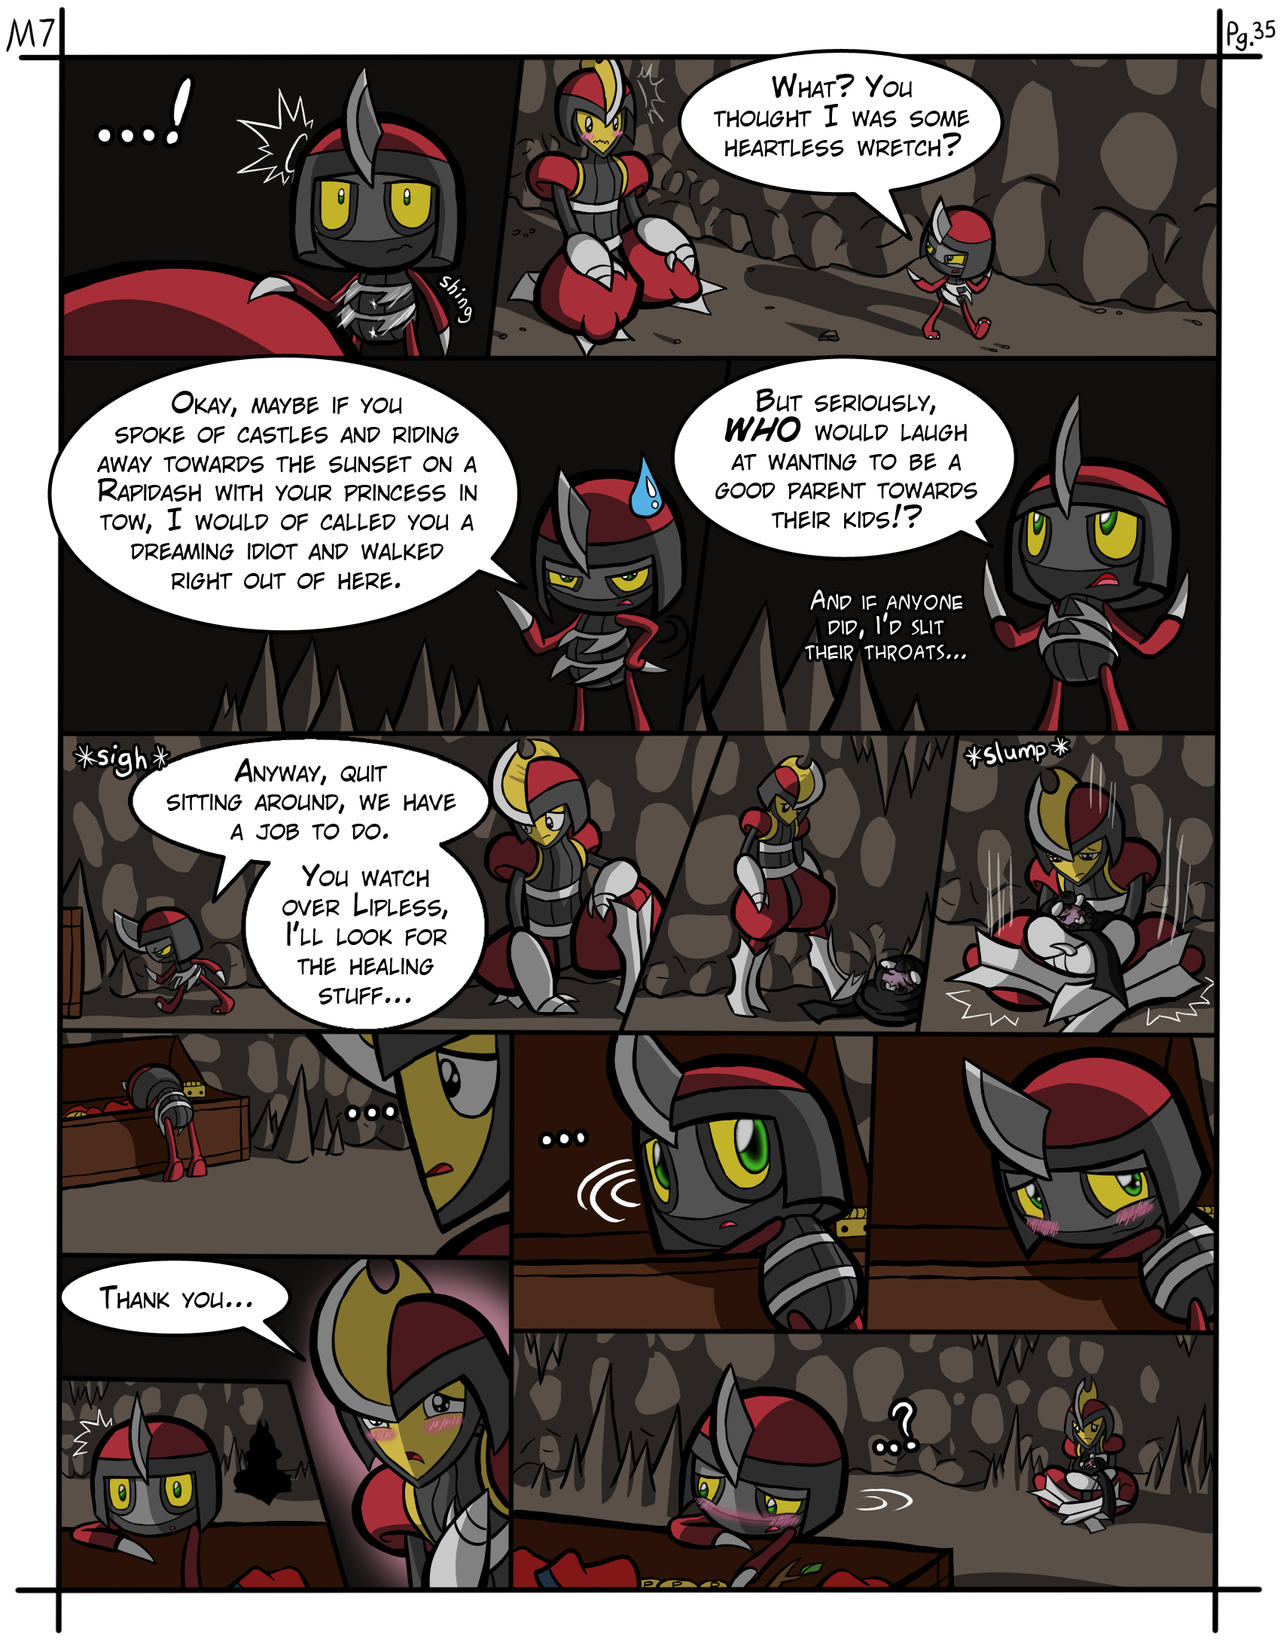 Mission 7: Of Knights and Pawns - Page 35 by Amy-the-Jigglypuff